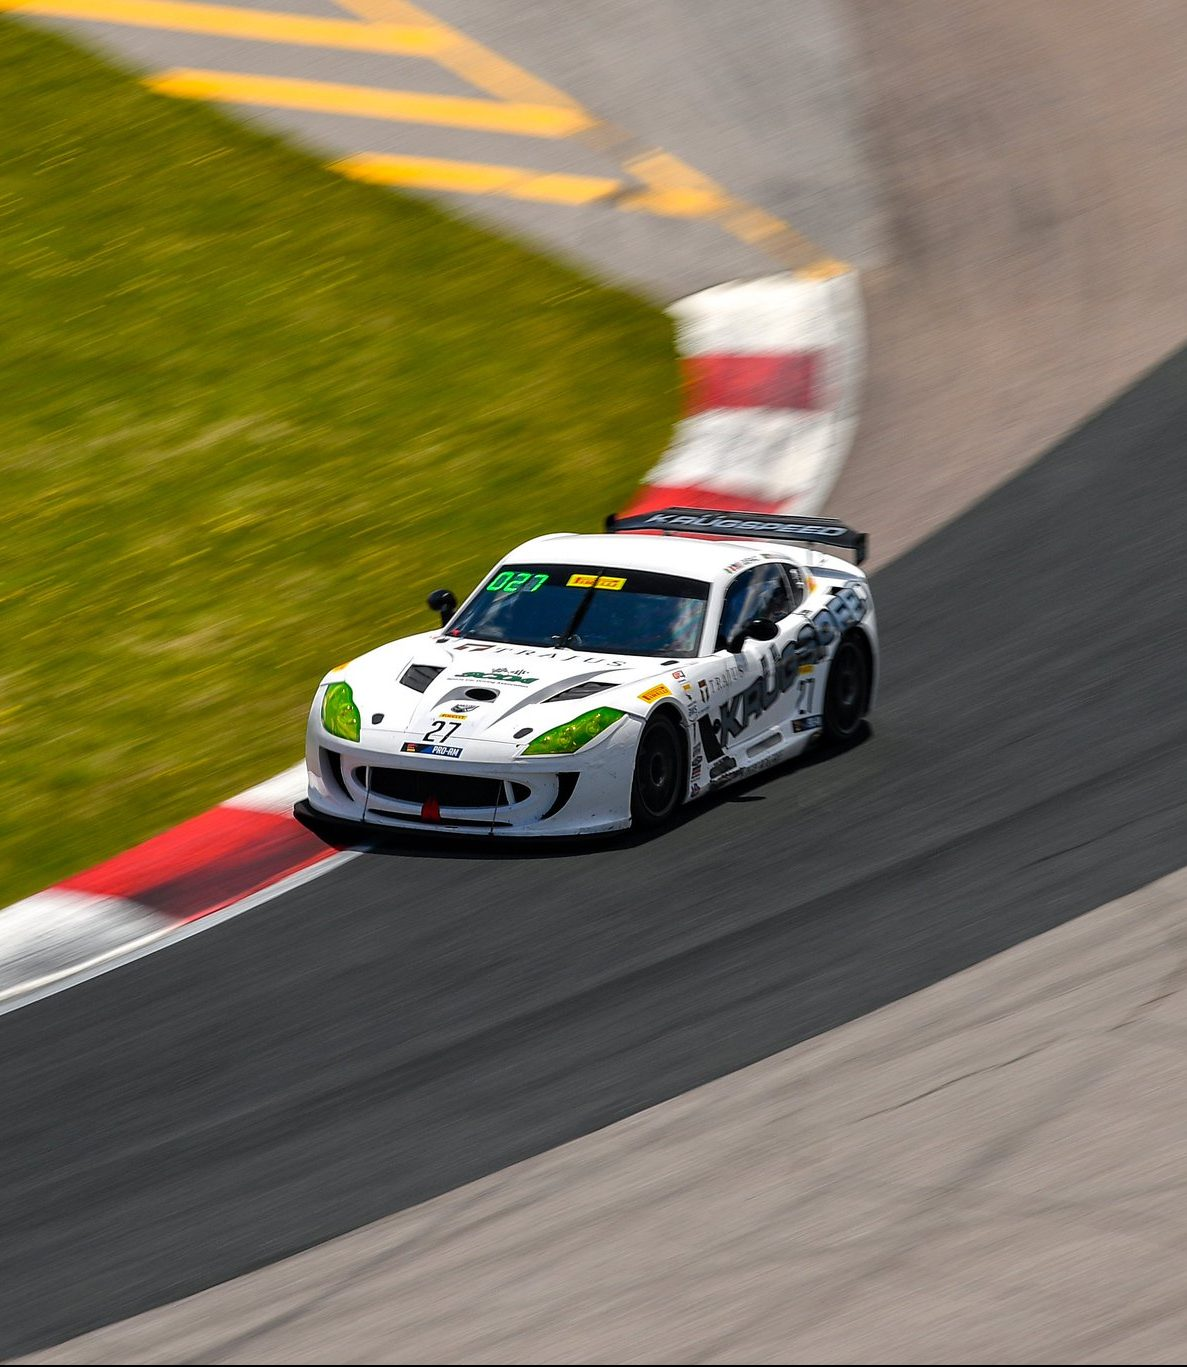 SCDA's Elivan Goulart wins both World Challenge GT-4East races at Canadian Tire Motorsports Park